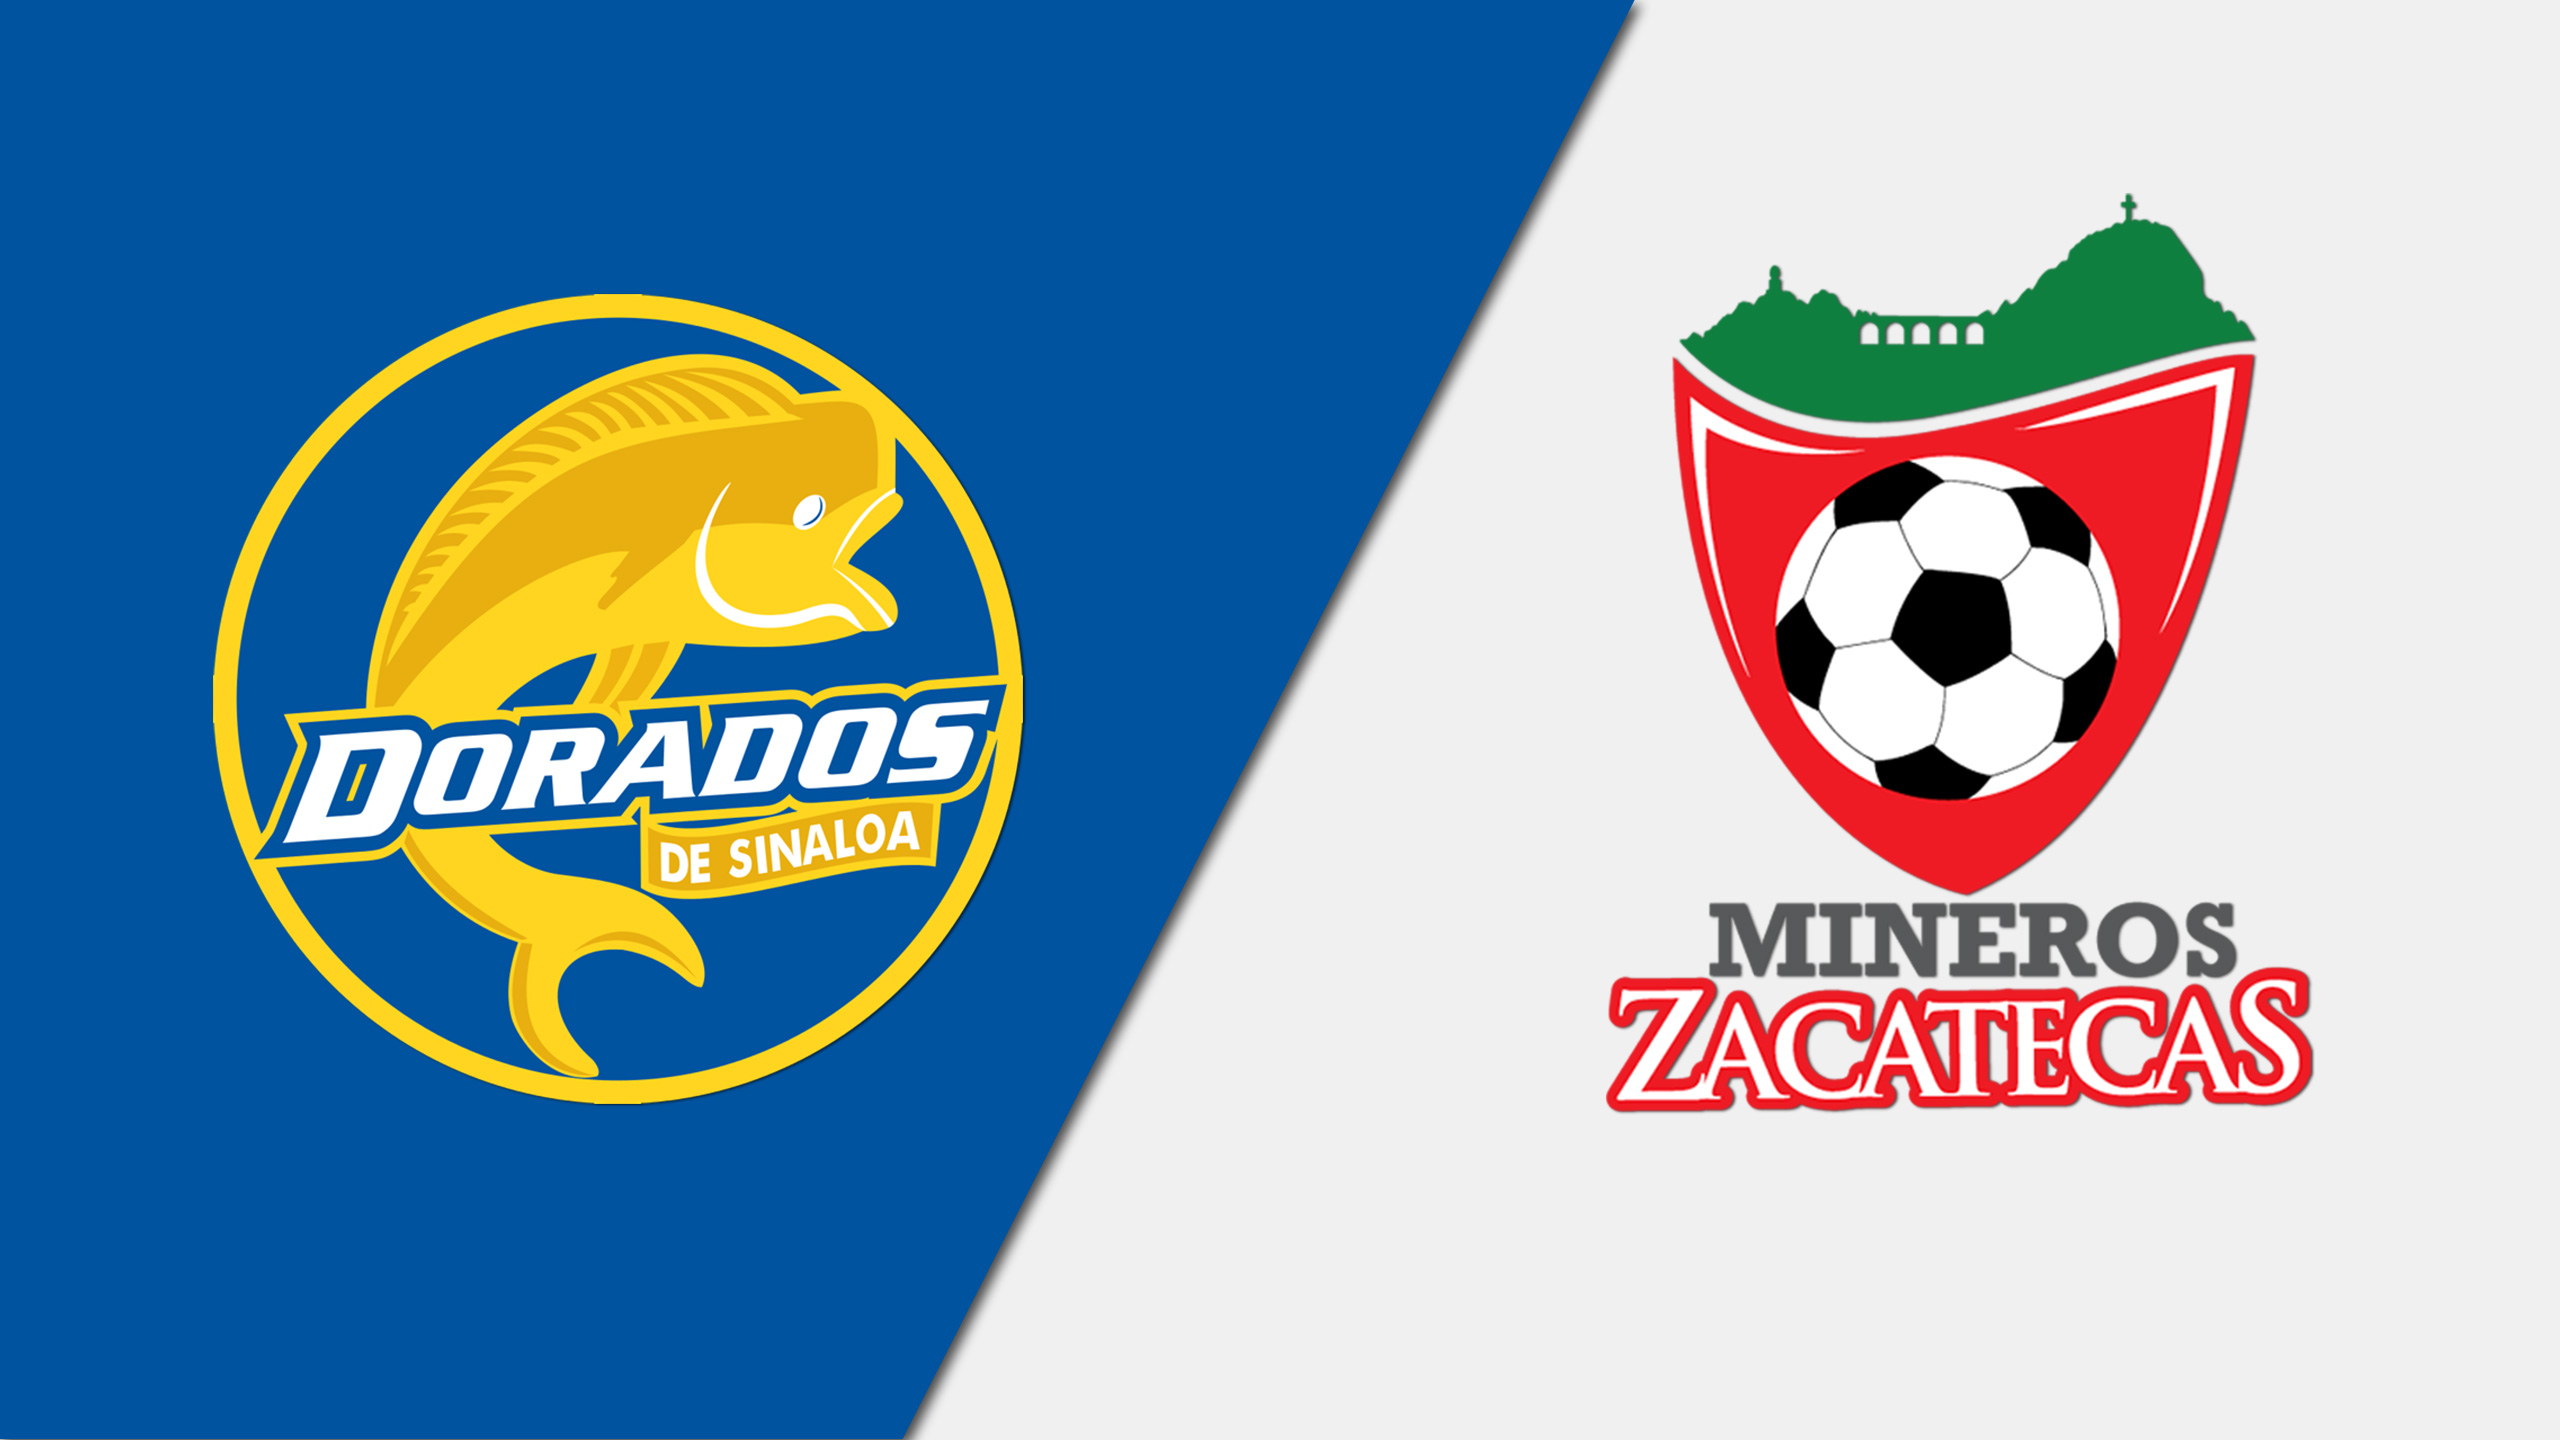 Dorados de Sinaloa vs. Mineros de Zacatecas (Quarterfinals, Leg 1) (re-air)